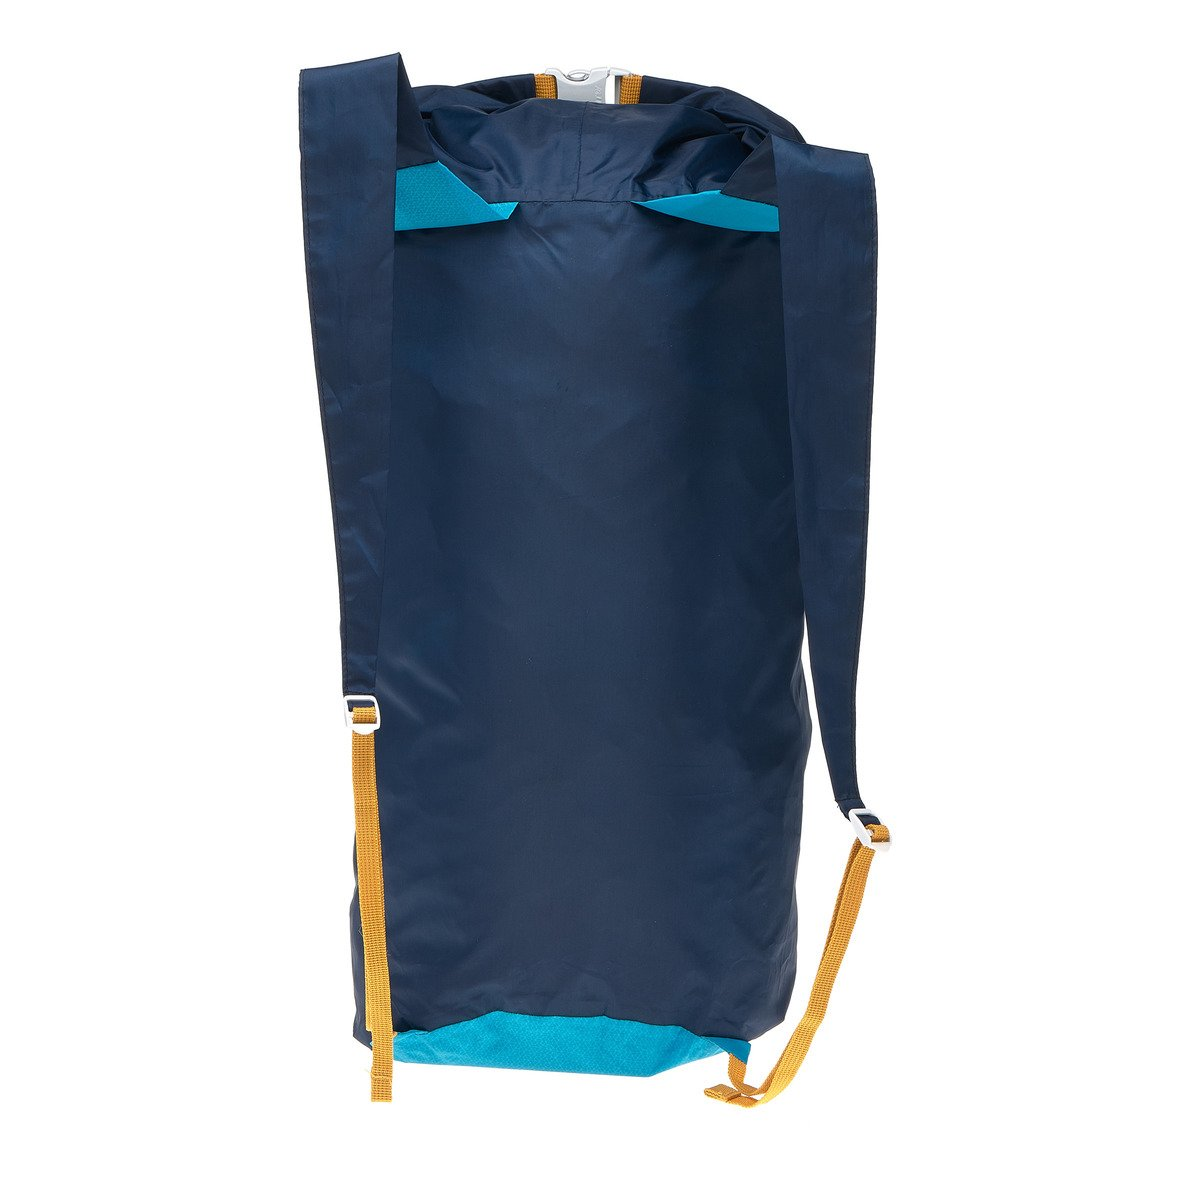 b9cbbe705376 Sportstation Quechua ARPENAZ 20L Ultra-Compact Waterproof Backpack Dry Bag  Roll Top Compression Sack for Hiking Camping  Amazon.ca  Sports   Outdoors